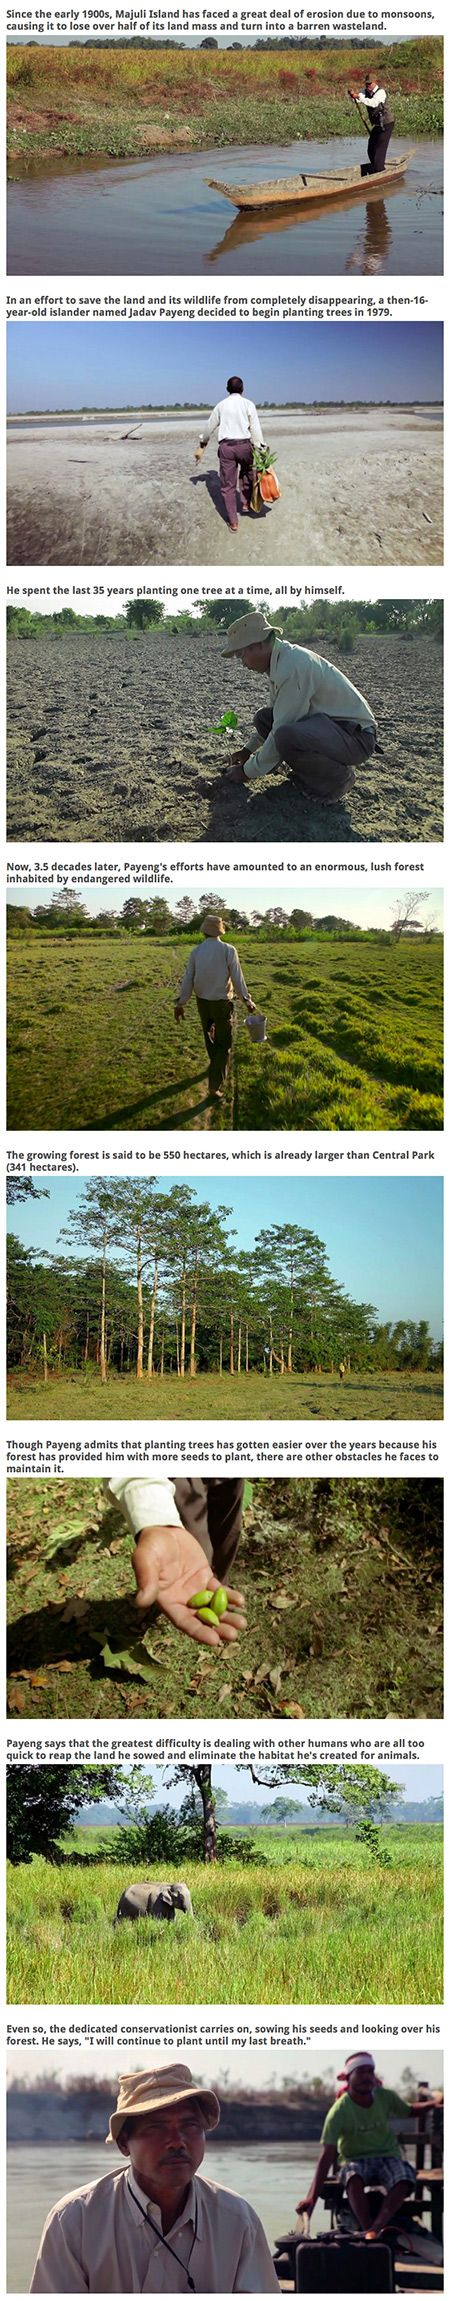 A man named Jadav Payeng single-handedly built a forest on Majuli Island, located in Northeast India, one tree at a time.